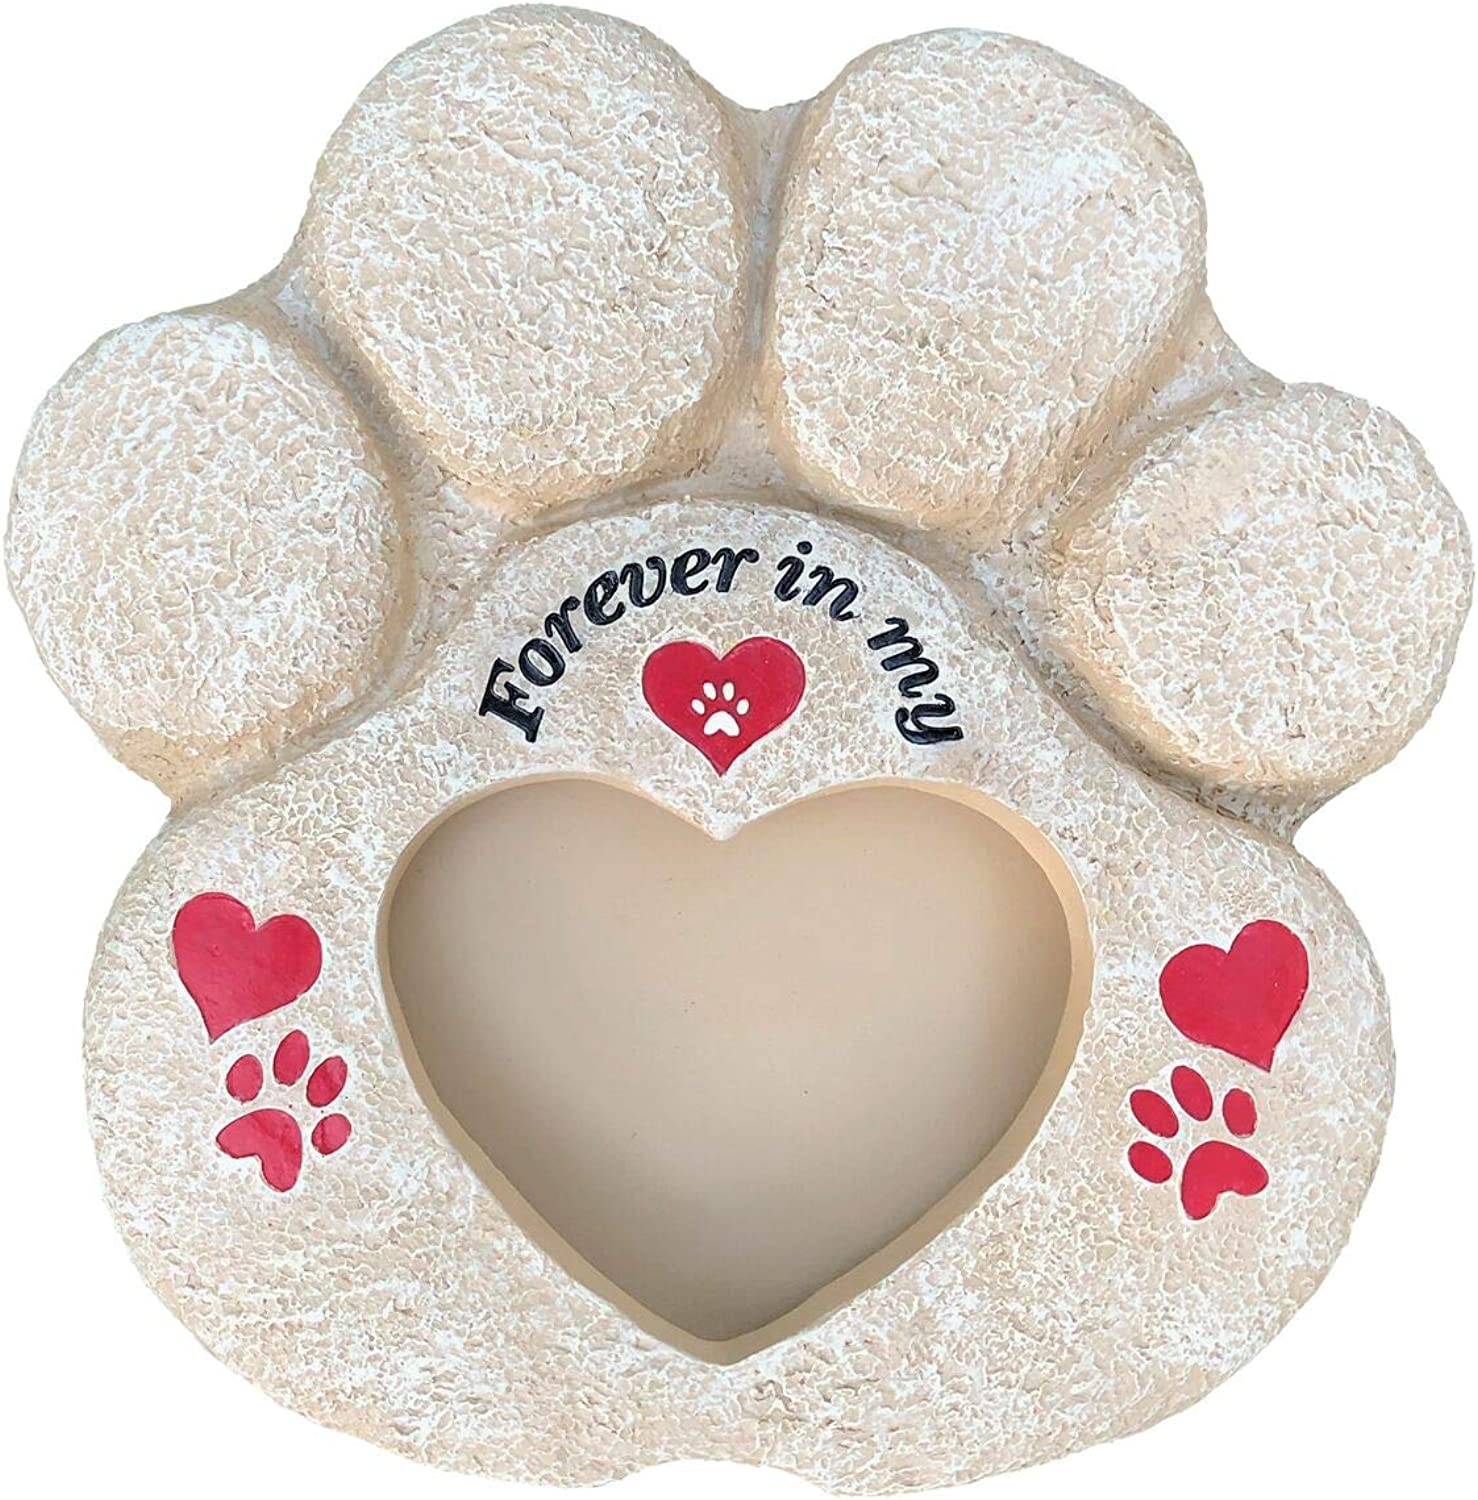 Pet Memorial Stones Pet Memorial Picture Frame  Heart Paw Pet Memorial Stones for Dogs, Cats, Loss of Pet   Waterproof Durable with Large Pet Picture Frame